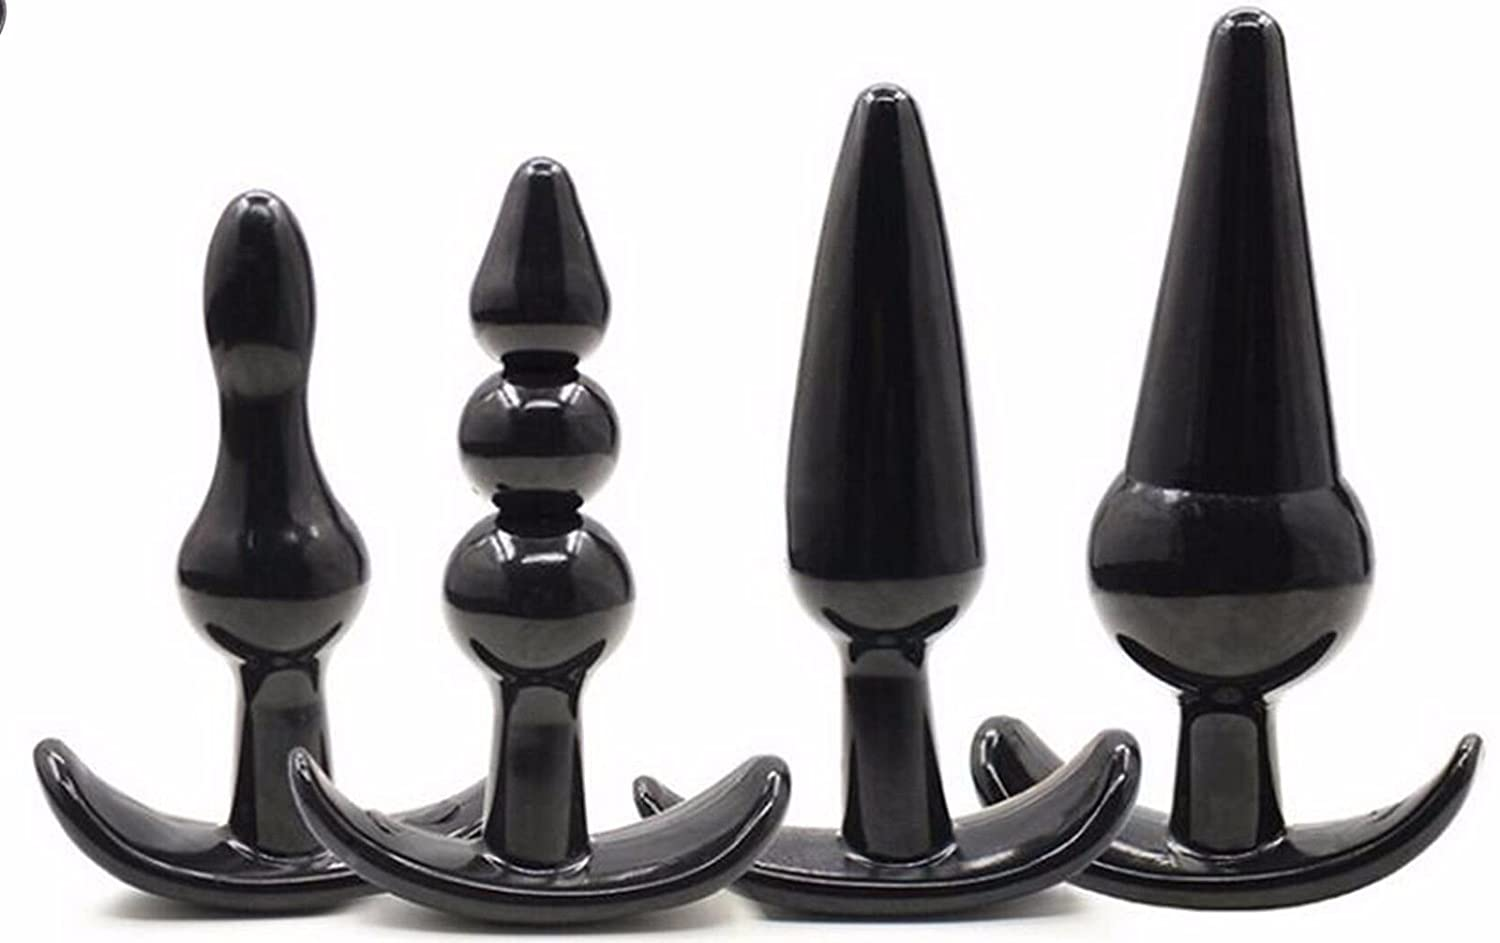 Amazon.com: ZUOYA 4pcs Black Adult Plug Toys Insert-Sex-Butt Silicone  Couple Flirt-Anal-Product: Health & Personal Care